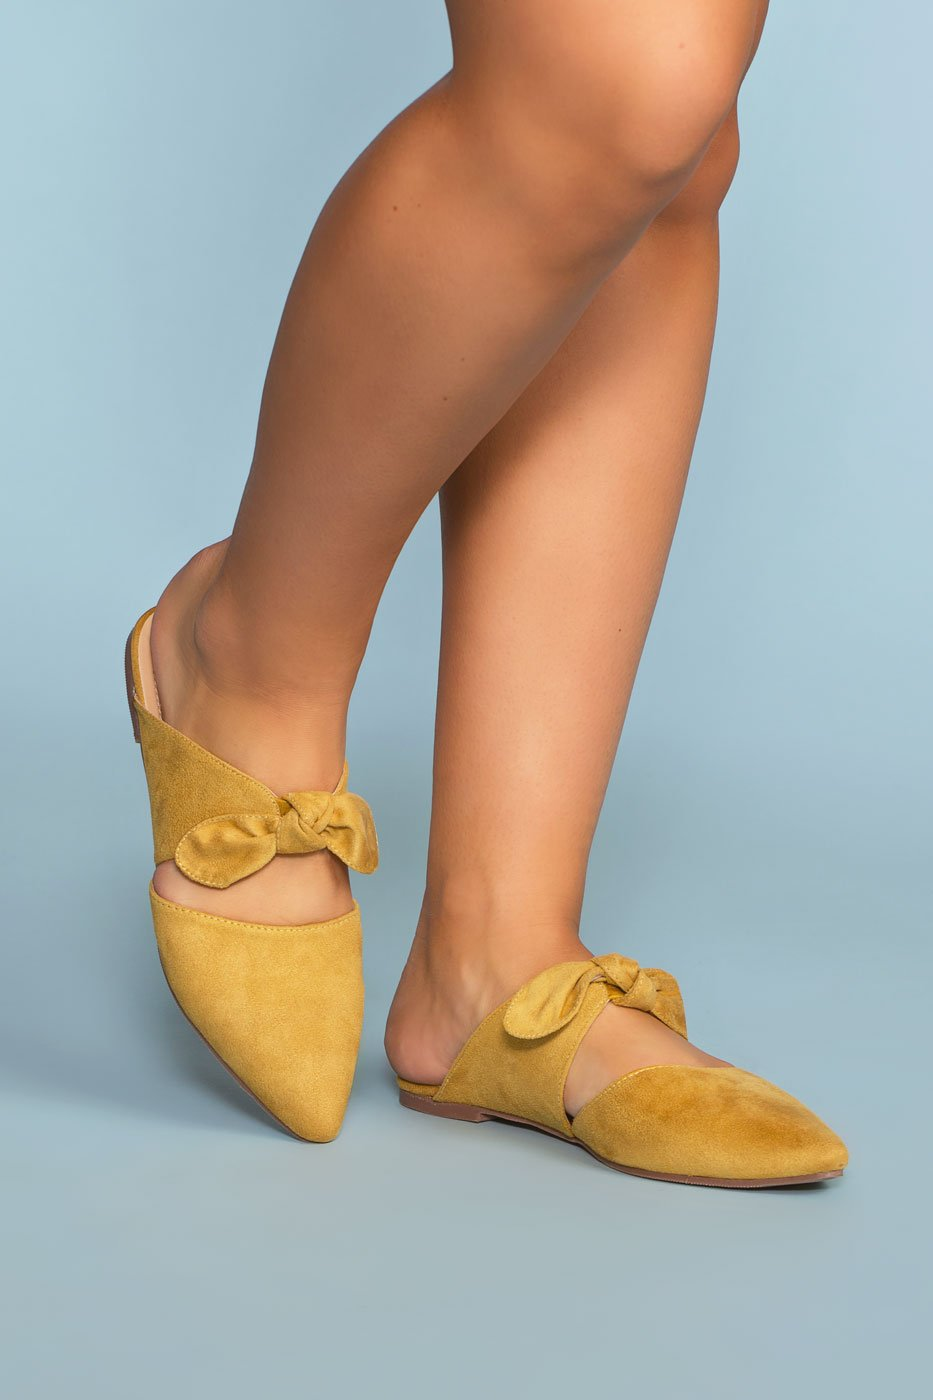 7c7044599d69 ... Shoes - Fiona Bow Pointy Toe Mules - Mustard ...